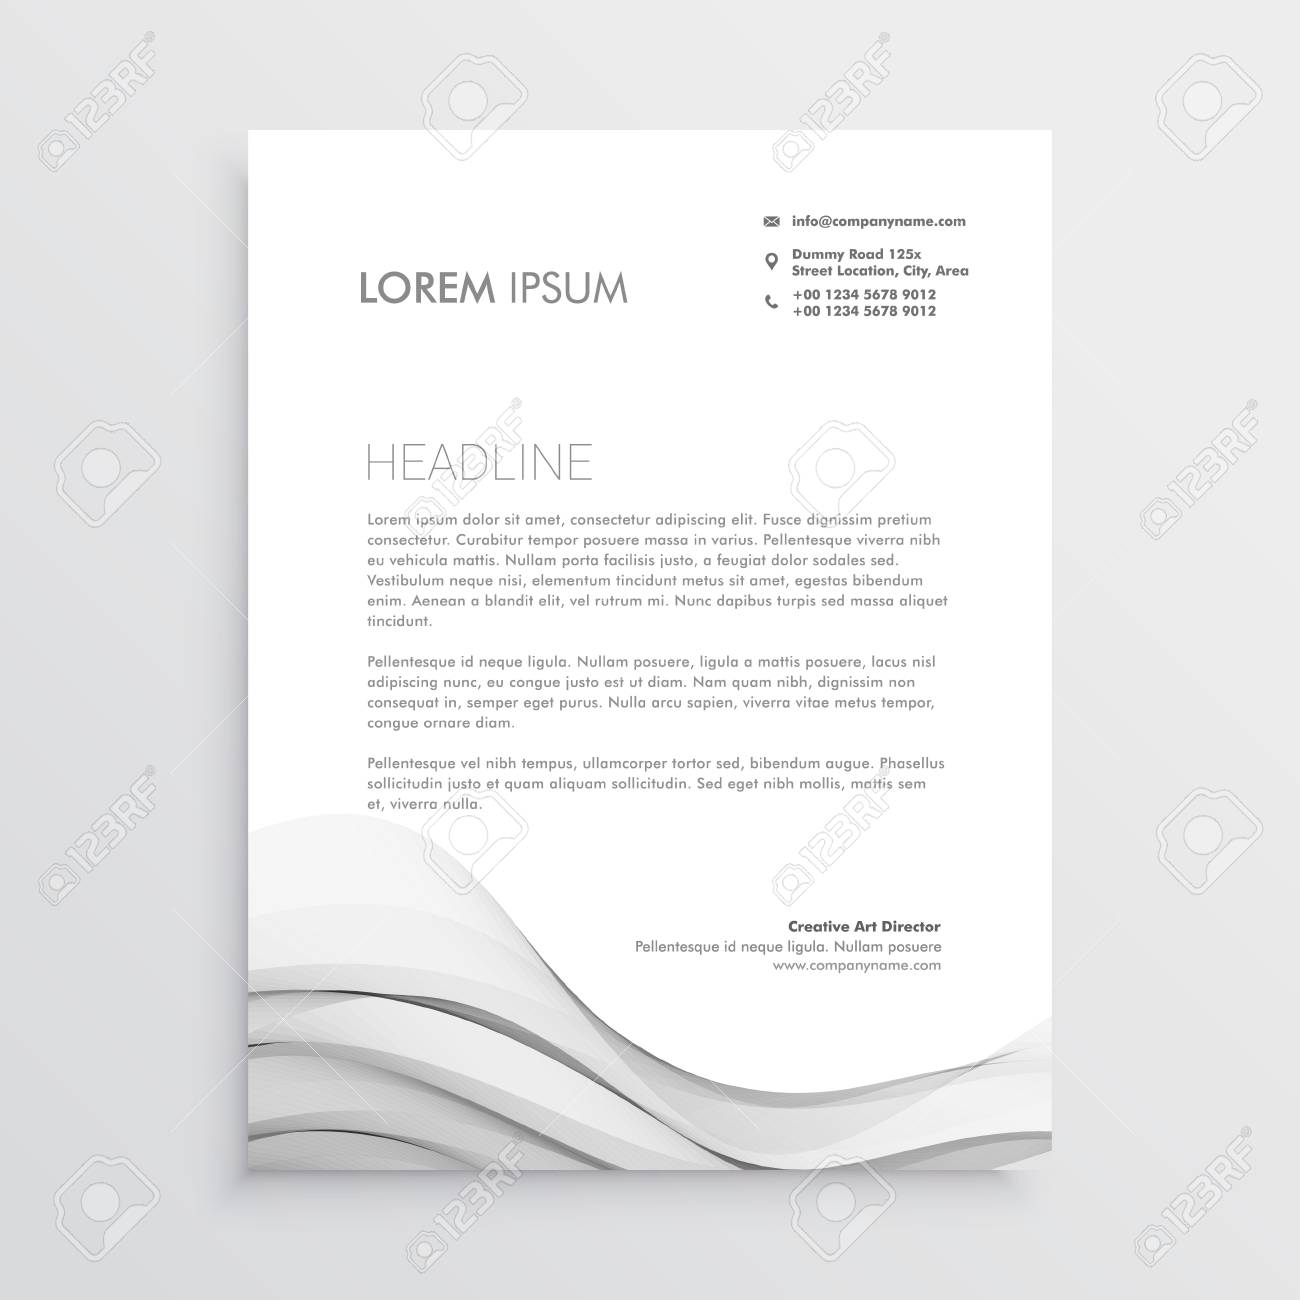 Clean letterhead vector design template royalty free cliparts clean letterhead vector design template stock vector 95821674 spiritdancerdesigns